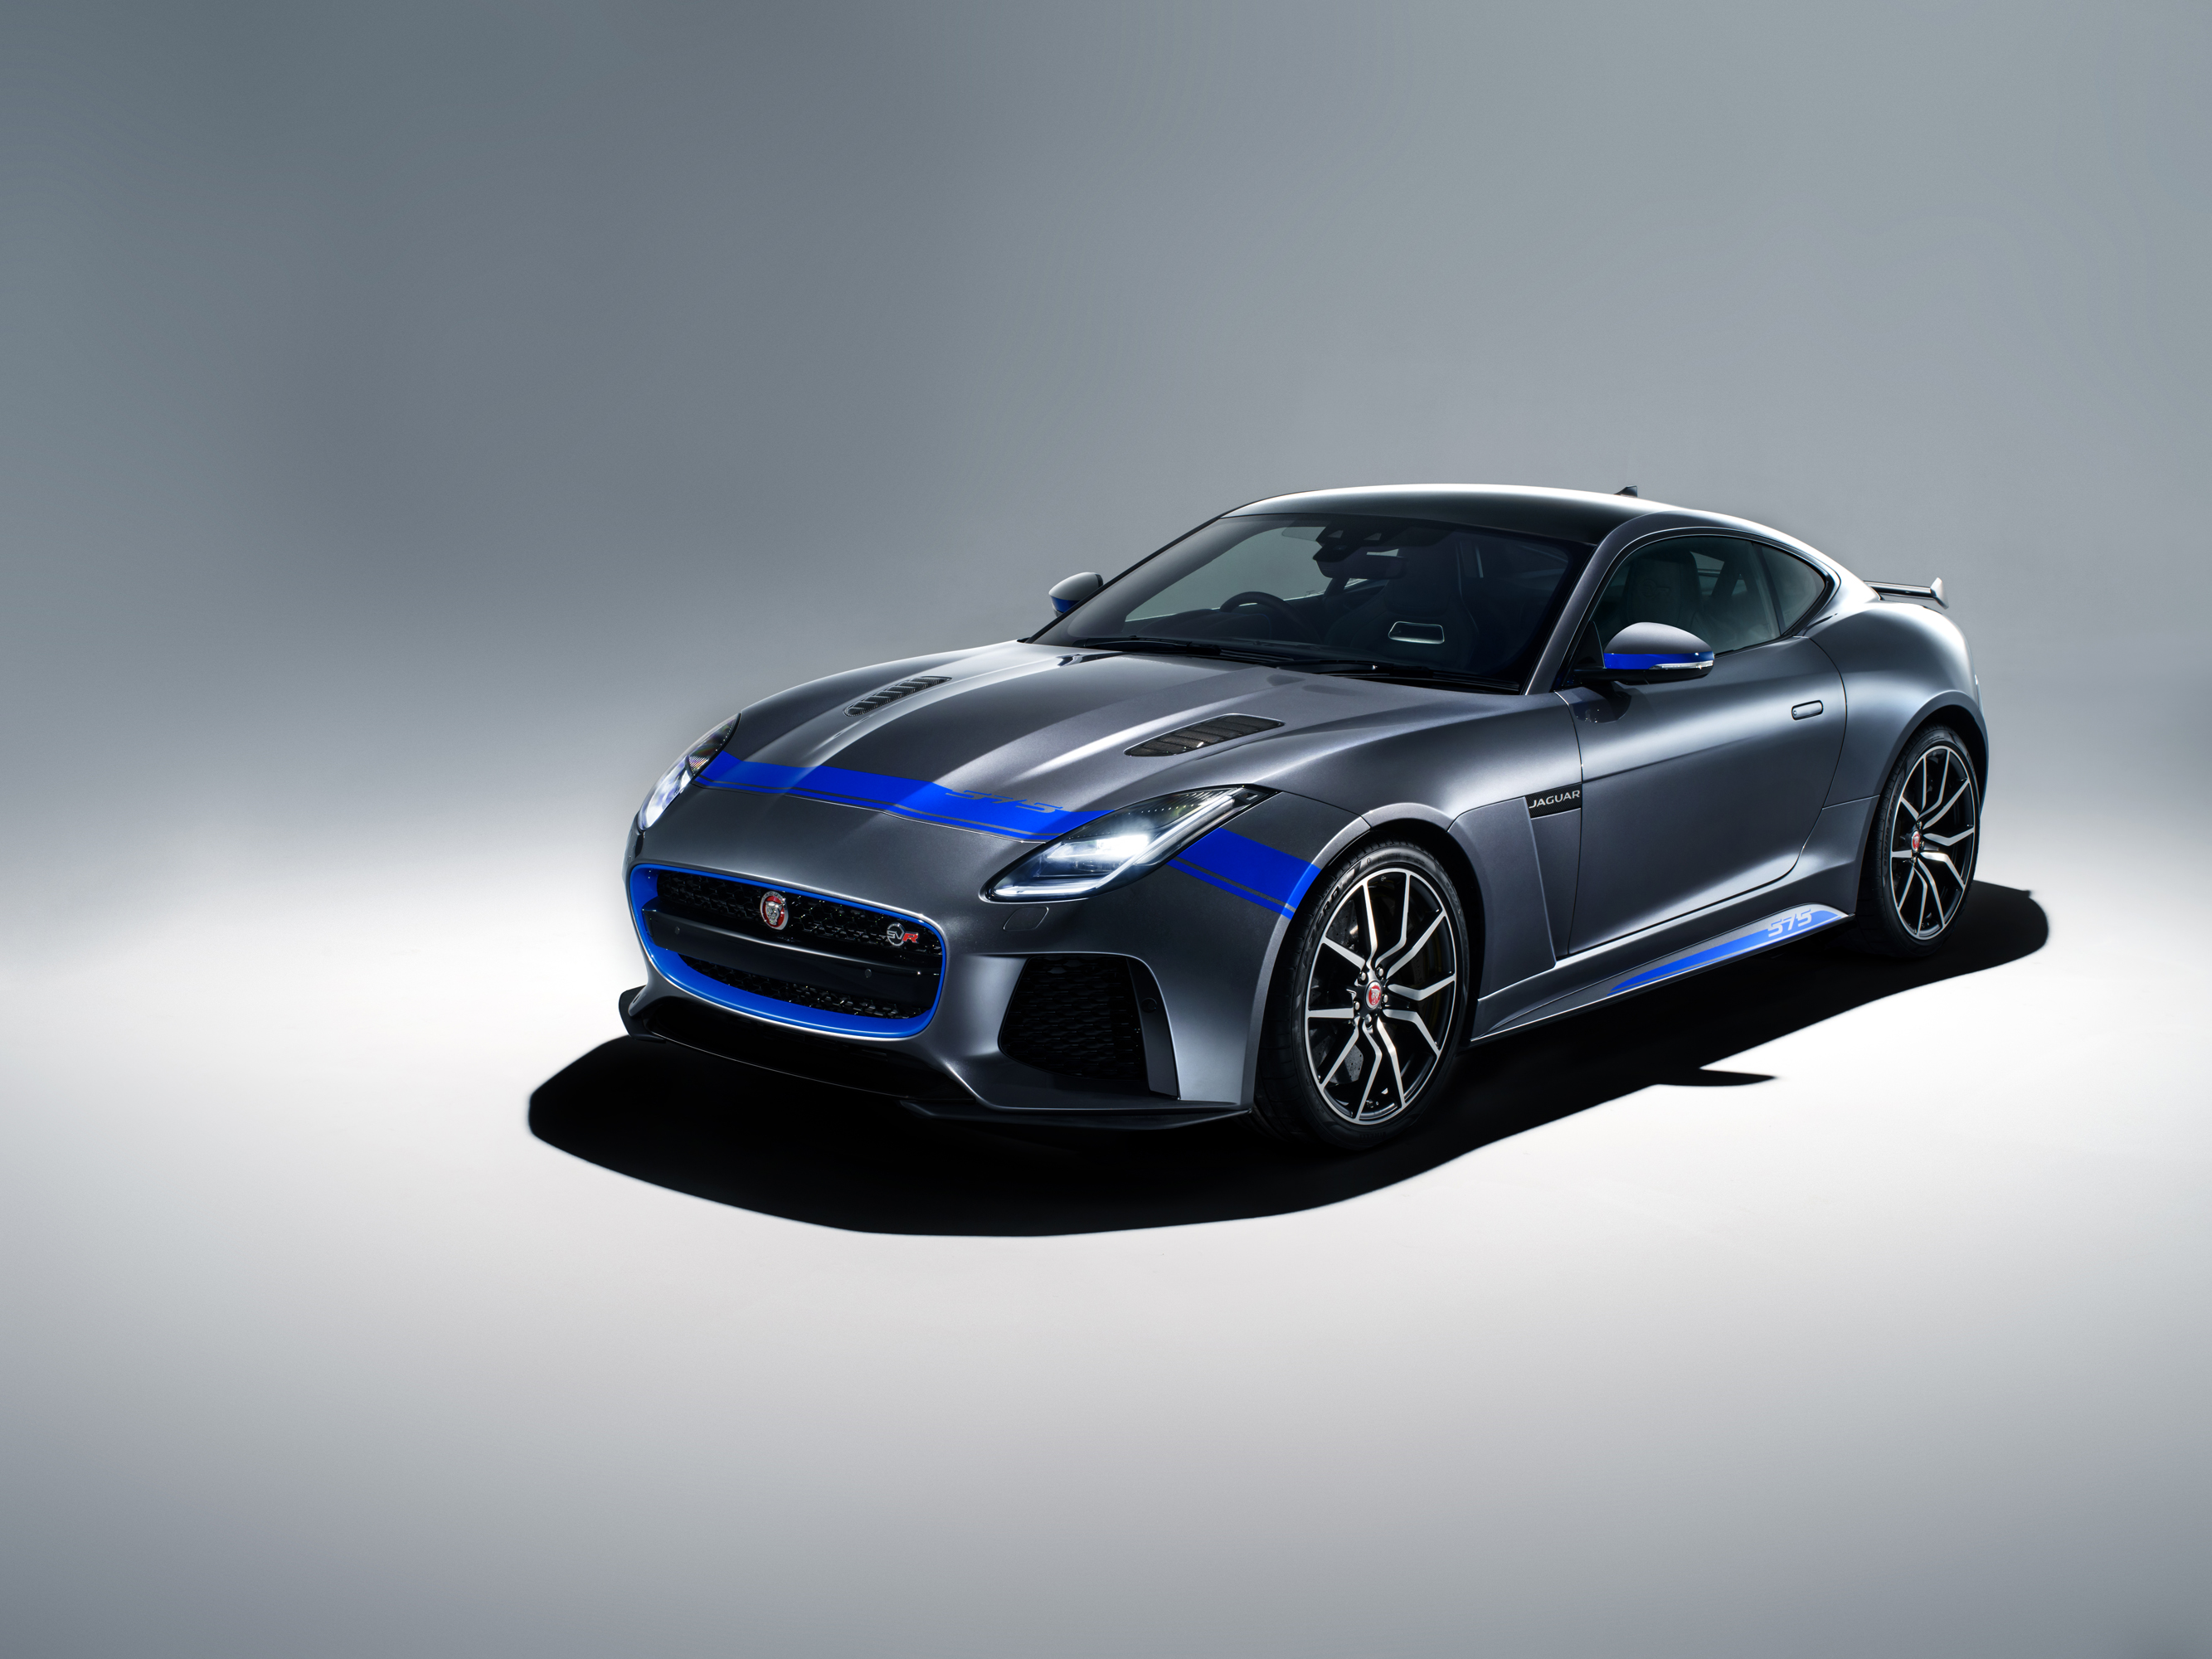 New Graphic Pack Adds Visual Muscle To 575ps Jaguar F Type Svr Supercar Jaguar Homepage International